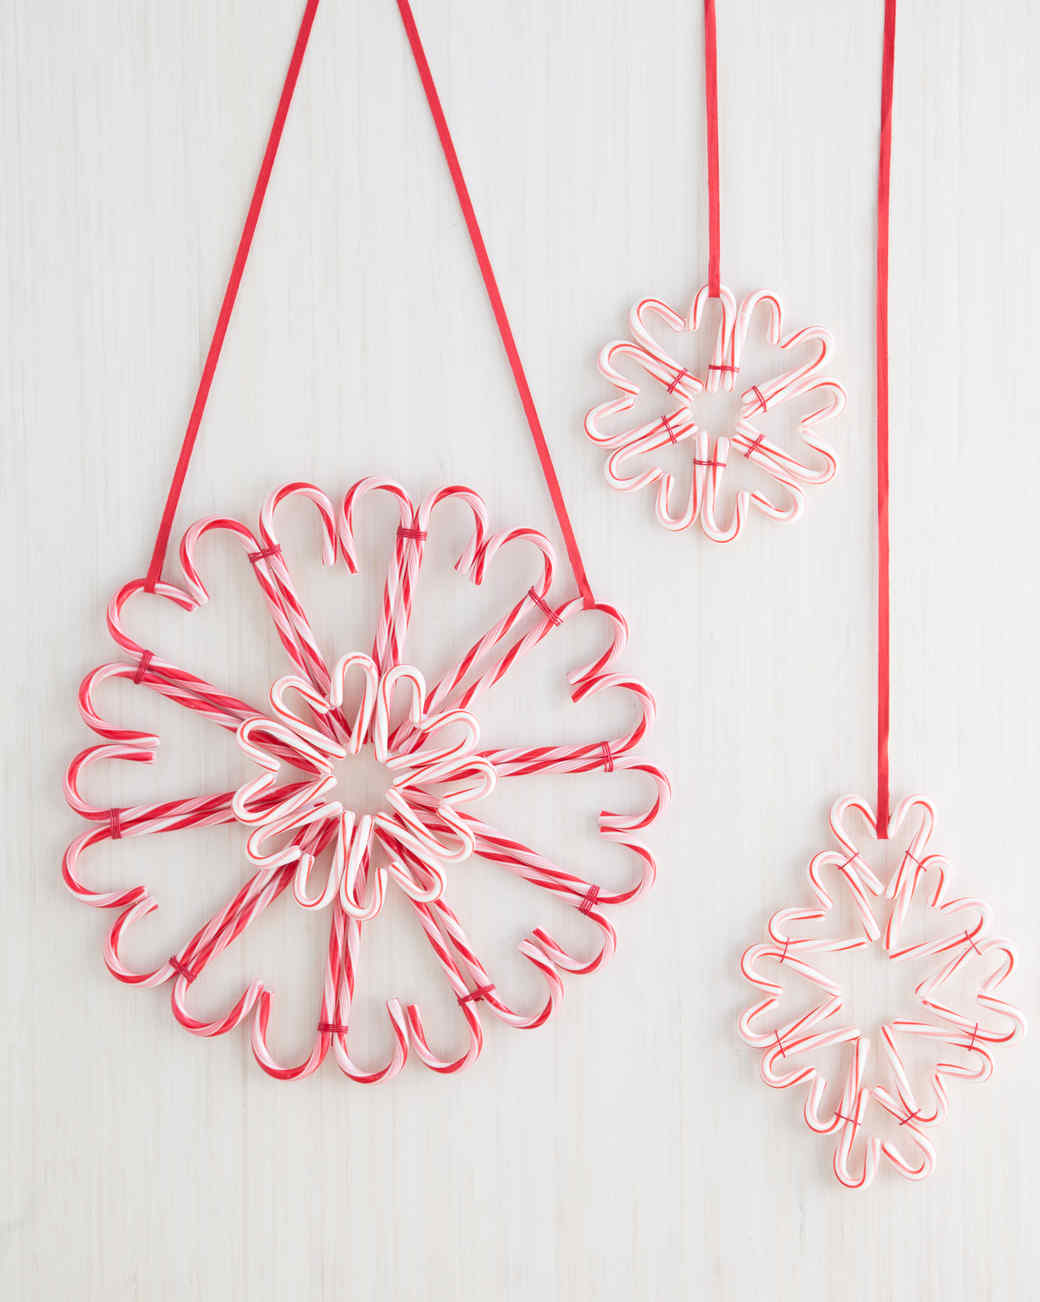 candy-cane-wreath-0363-d11.jpg